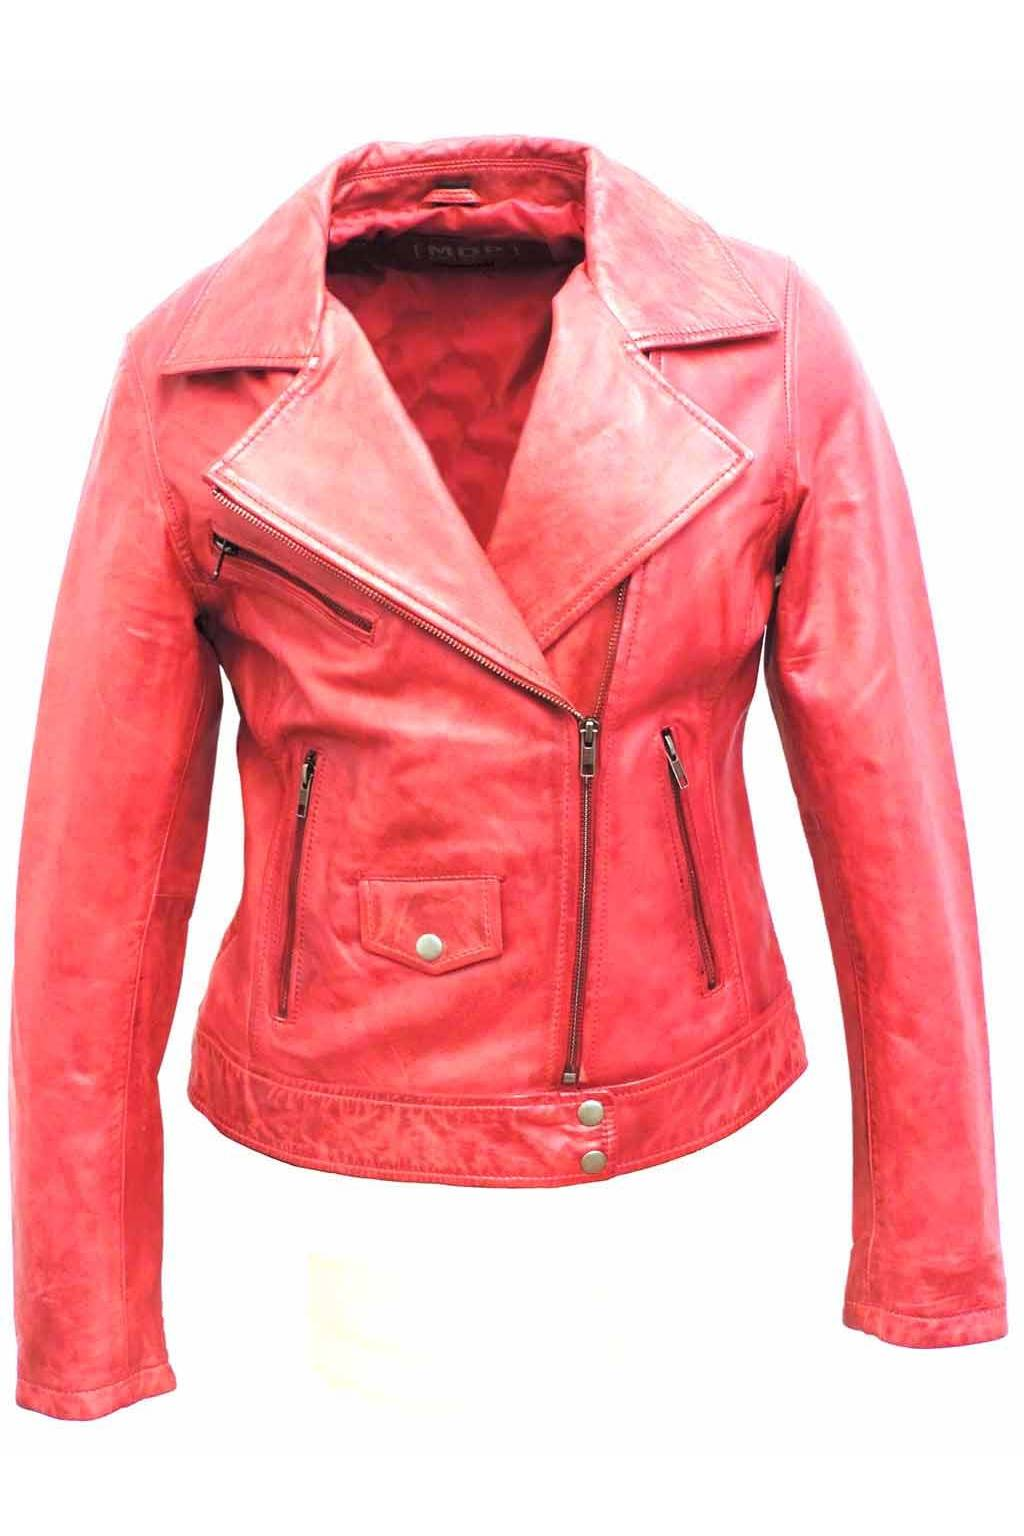 Mdp Jacket AWL 07 Red